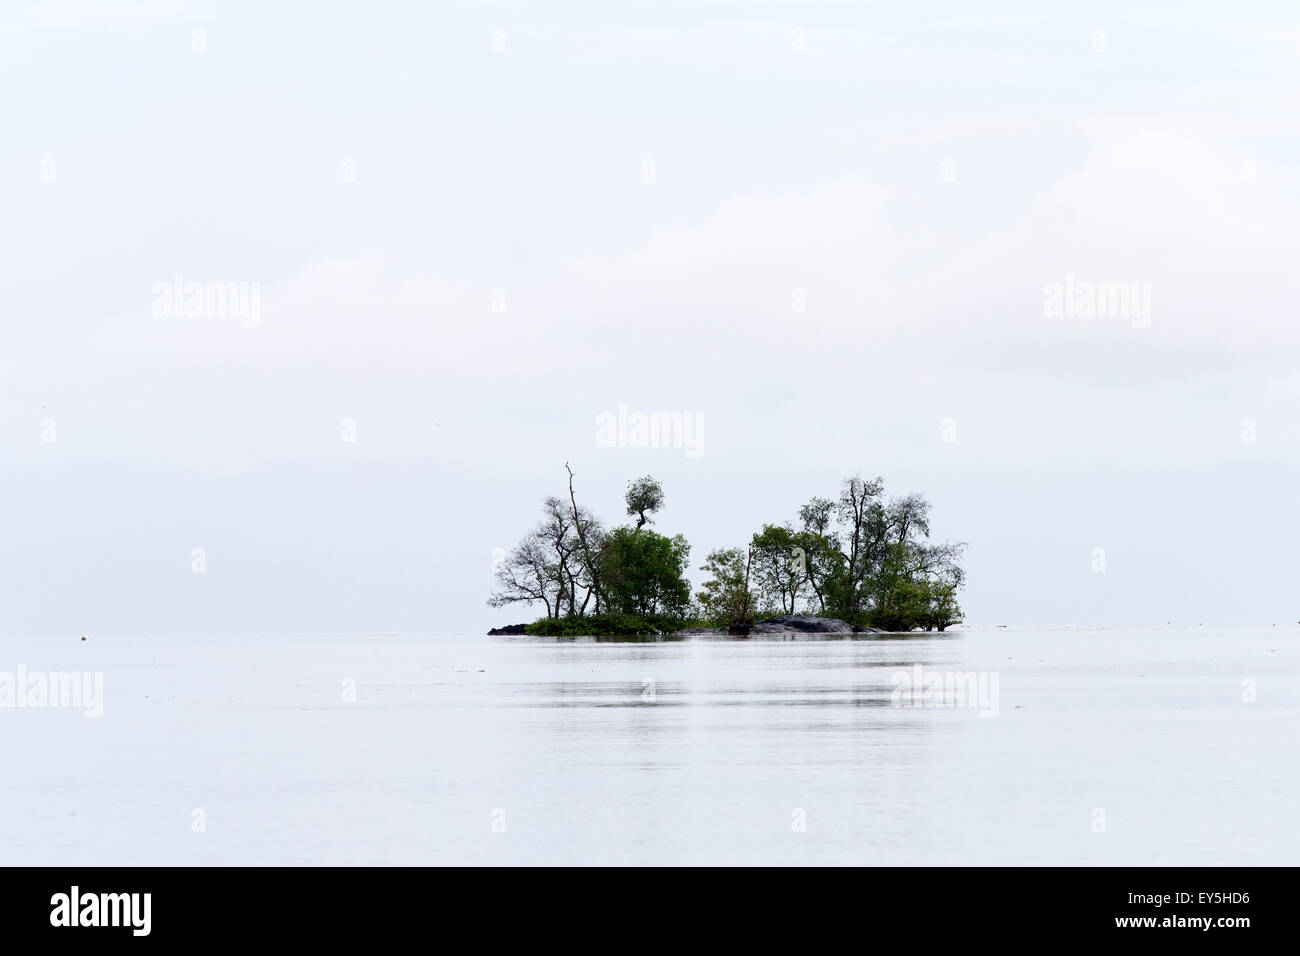 Mouth of the river in Salak South China Sea - Sarawak Borneo Stock Photo